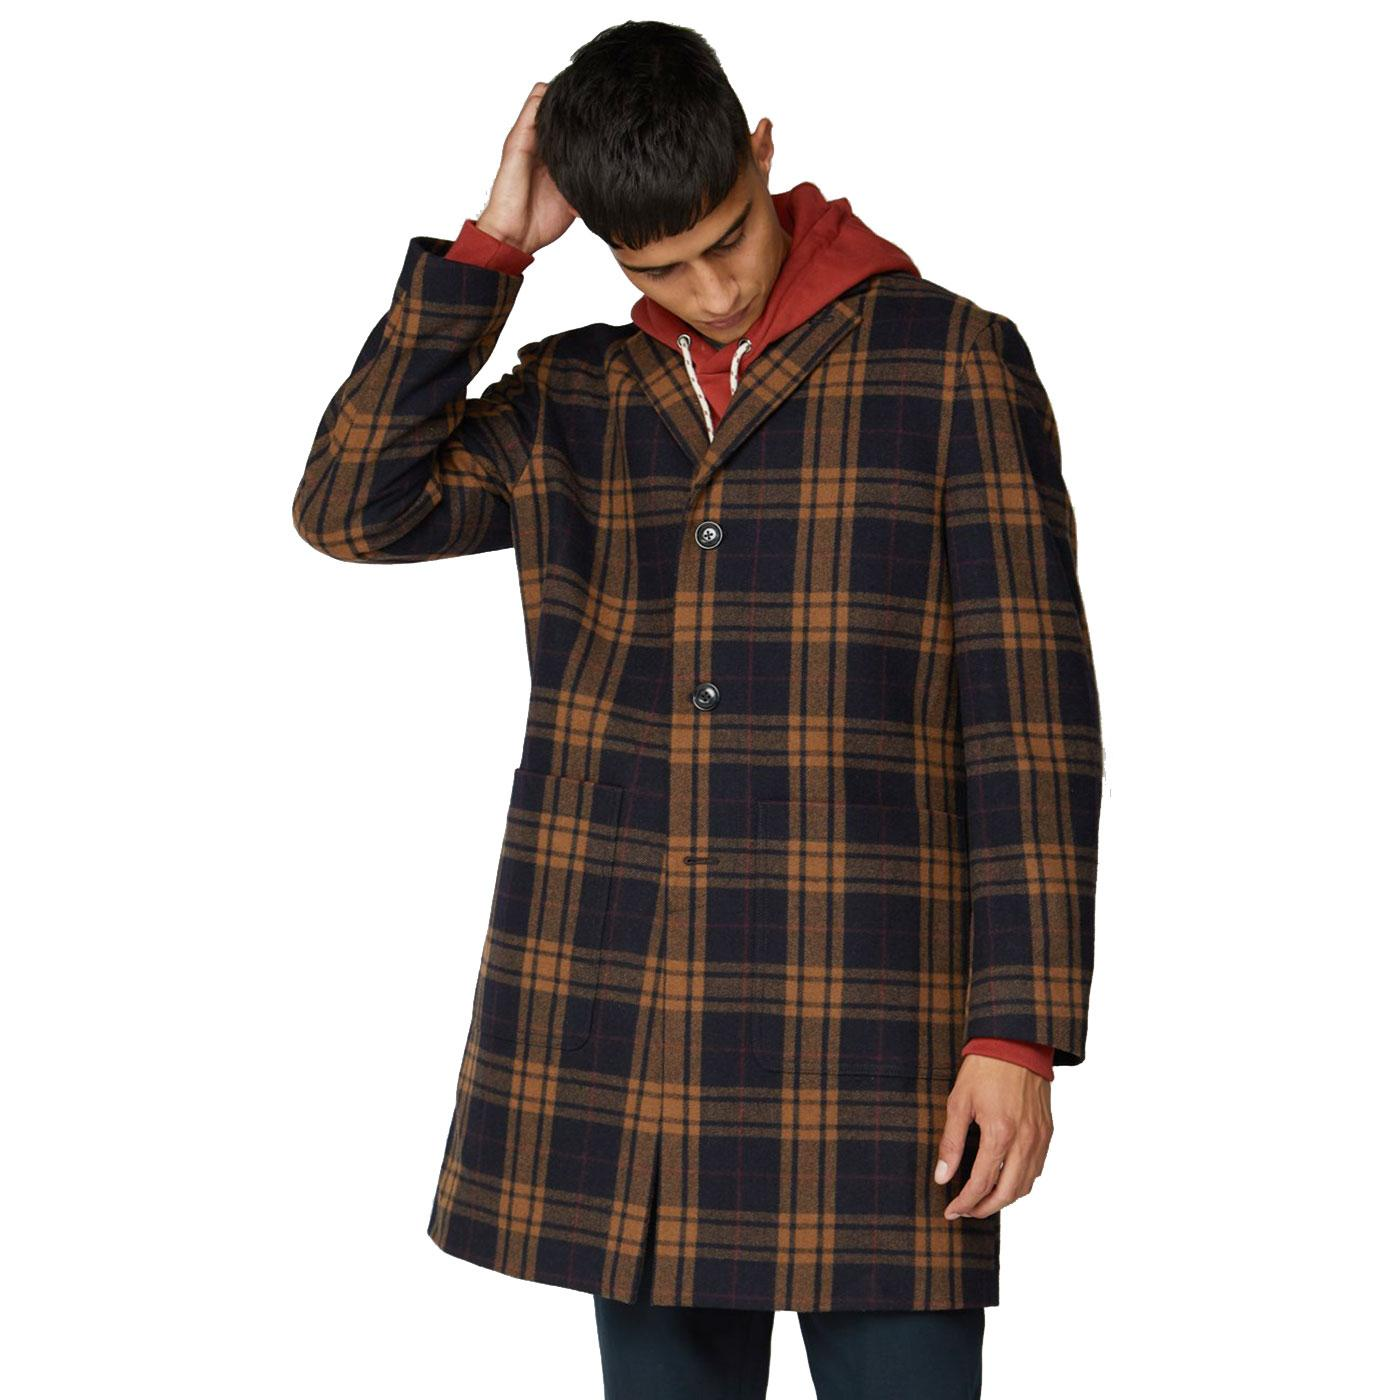 BEN SHERMAN Men's Retro Tailored Check Overcoat